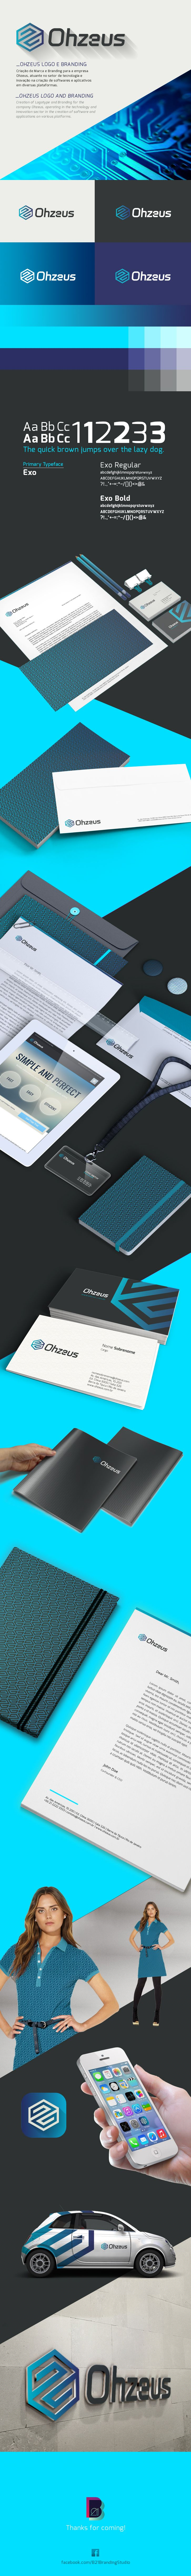 Creation of Logotype and Branding for the company Ohzeus, operating in the technology and innovation sector in the creation of software and applications on various platforms.